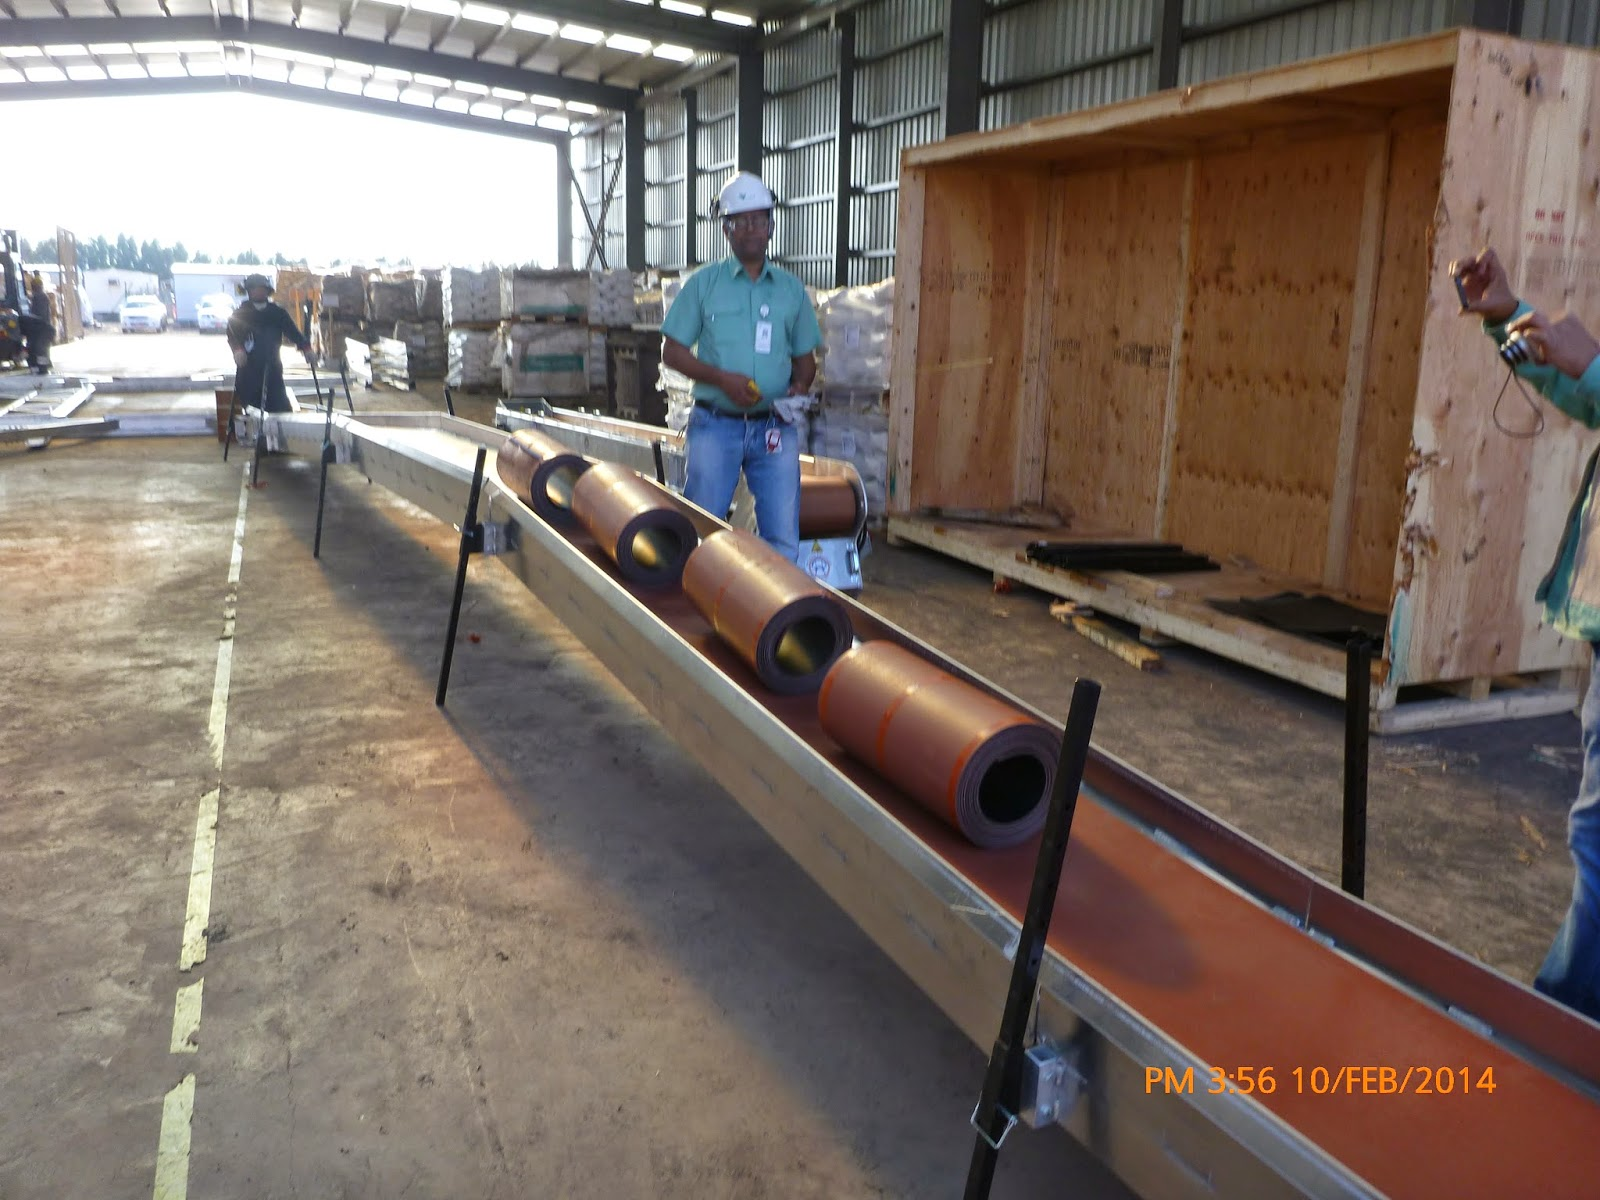 Dry running of the hydraulic conveyor with rolled conveyor as load.